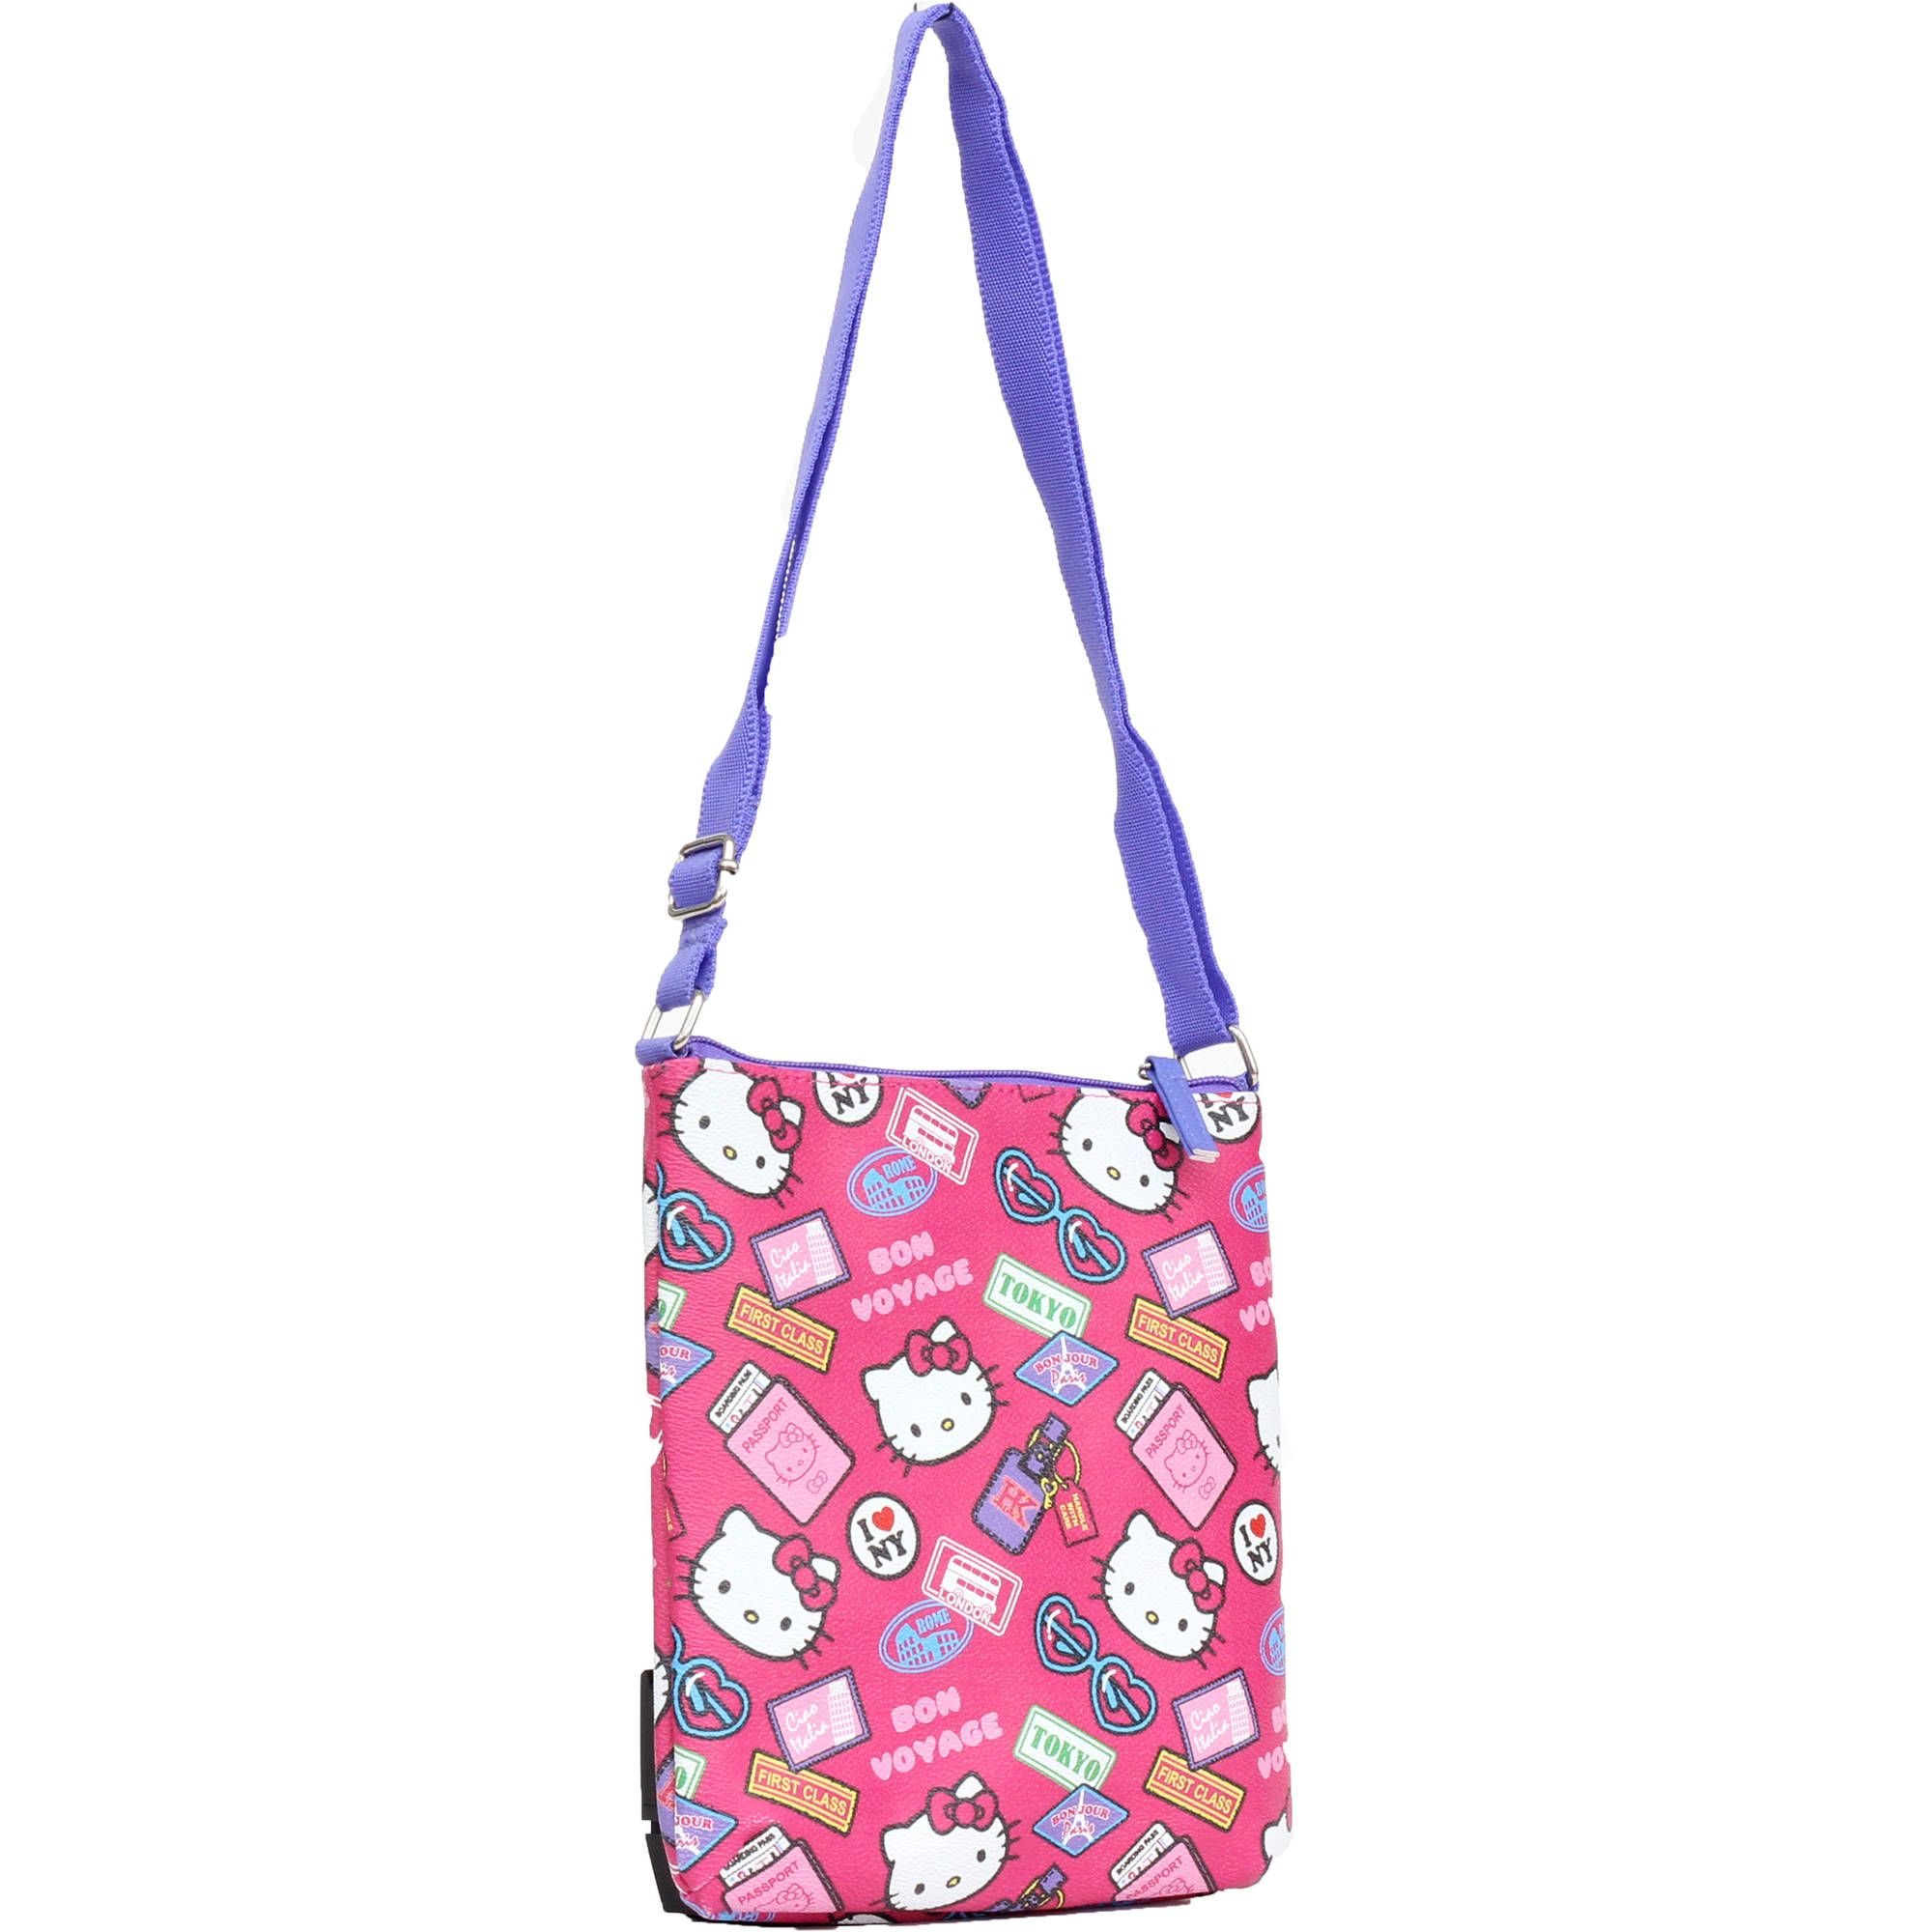 Best value girl apos licensed bags collection jpg 2000x2000 Bon voyage kitty 13e514dab7